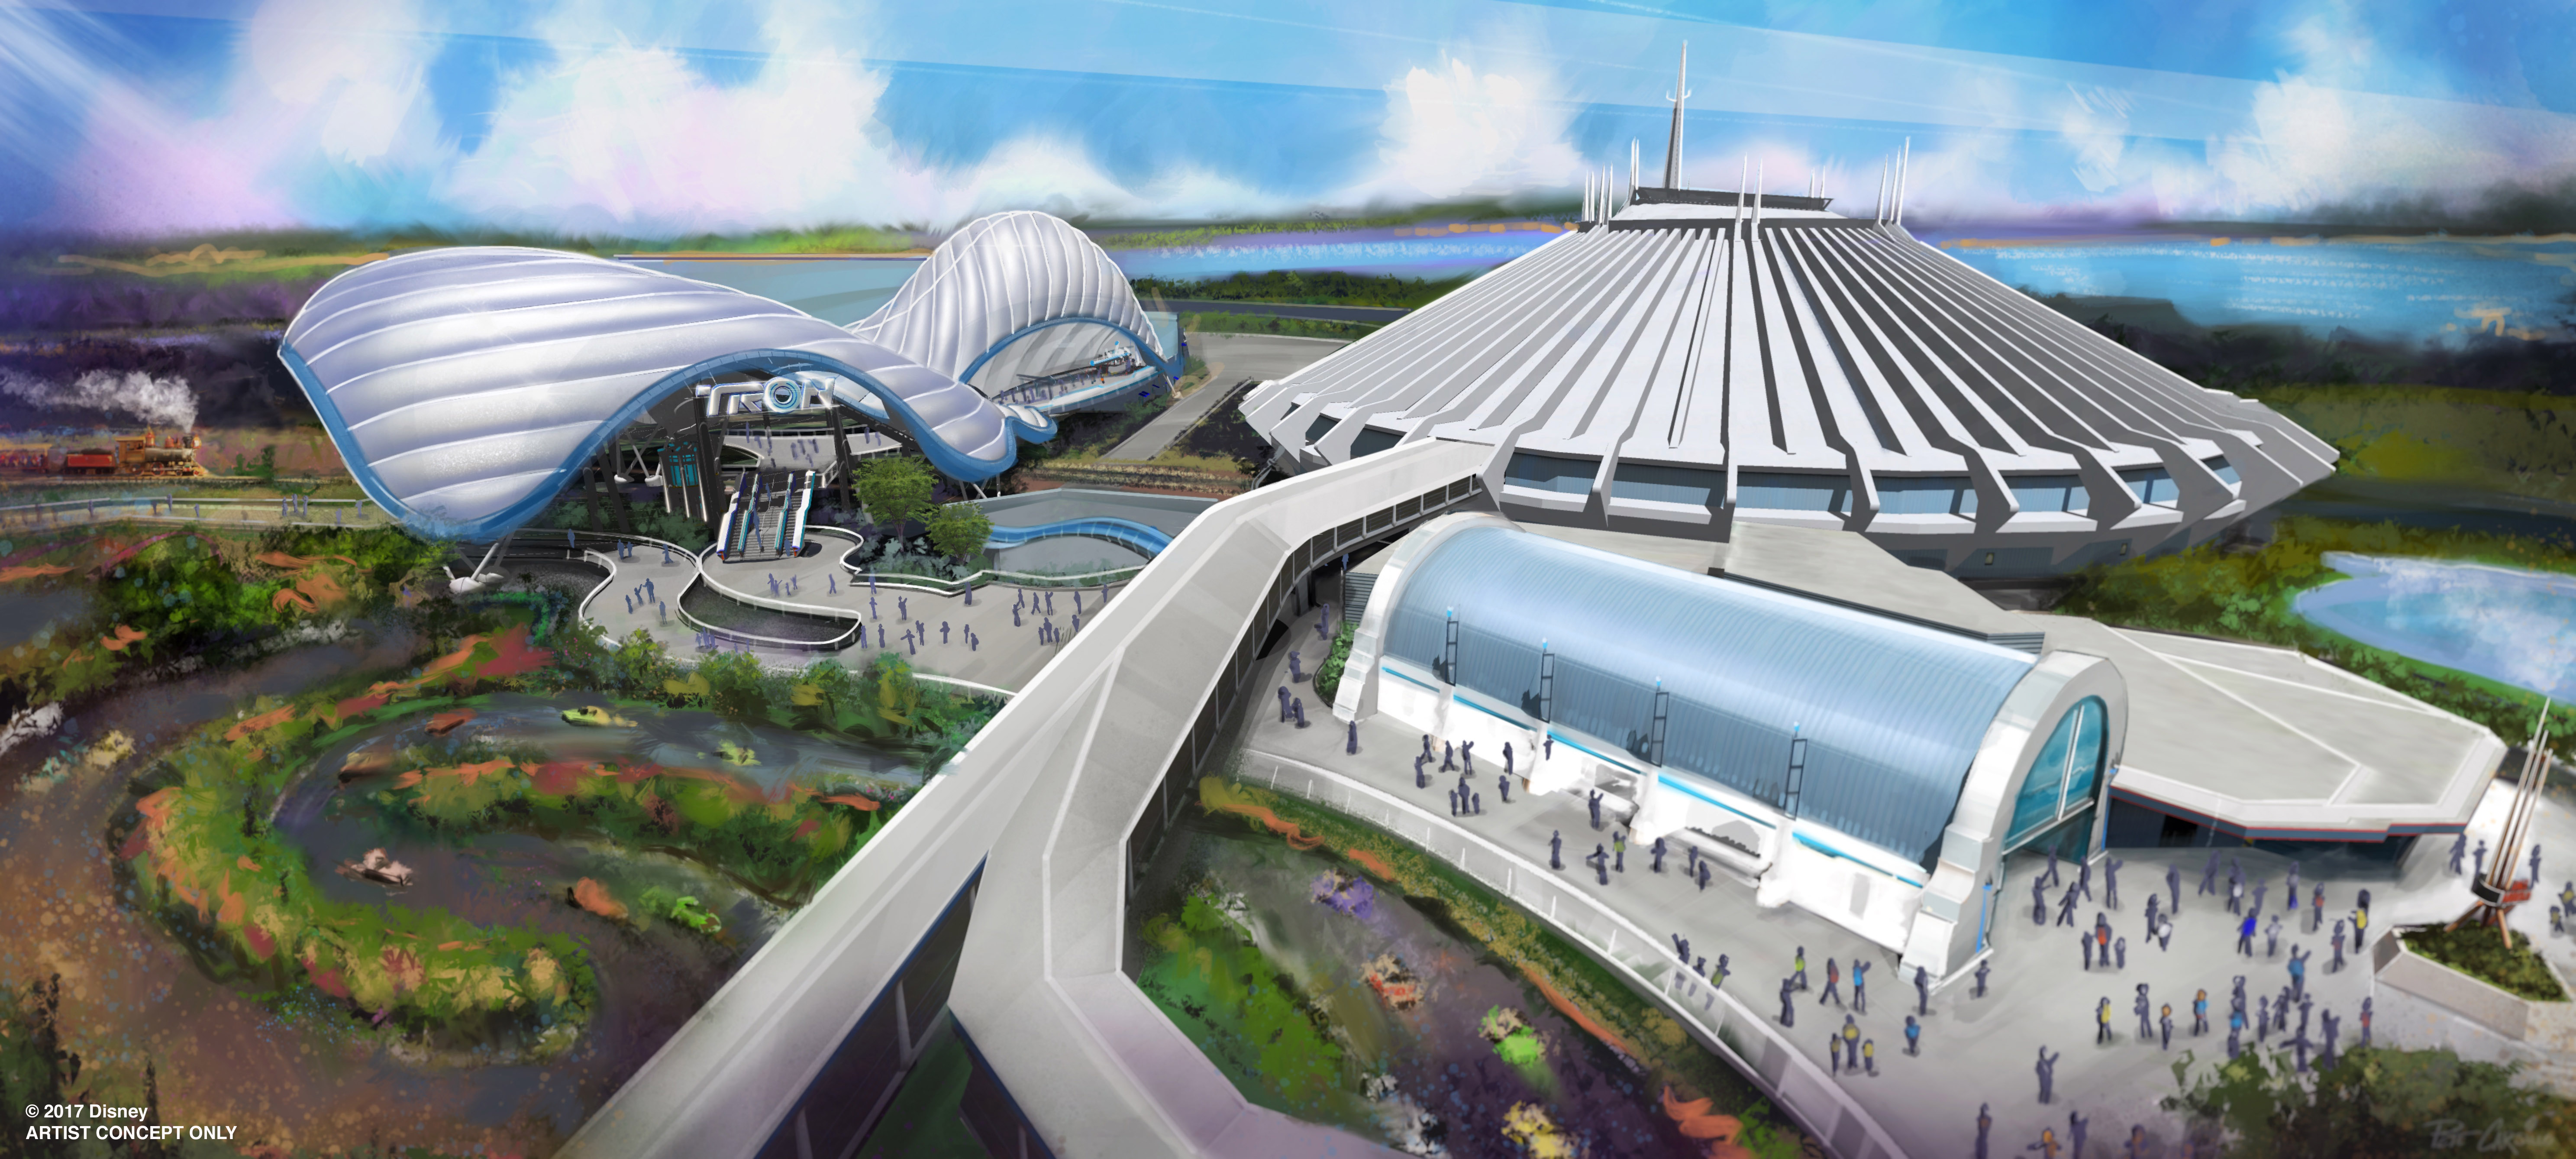 New Tron Attraction Coming to Magic Kingdom Park at Walt Disney World Resort